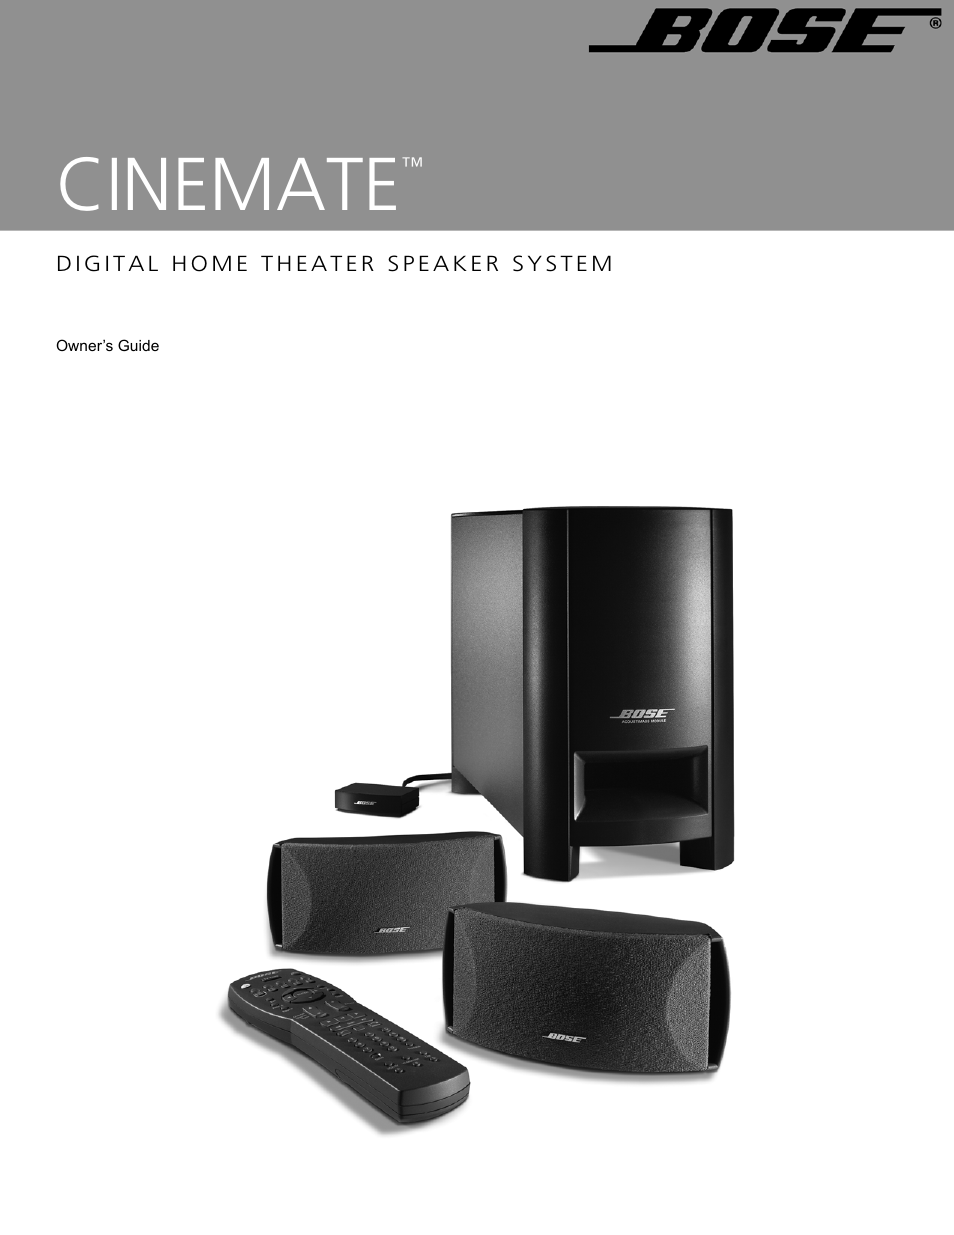 Bose cinemate digital home theater speaker system user manual 24 pages publicscrutiny Choice Image